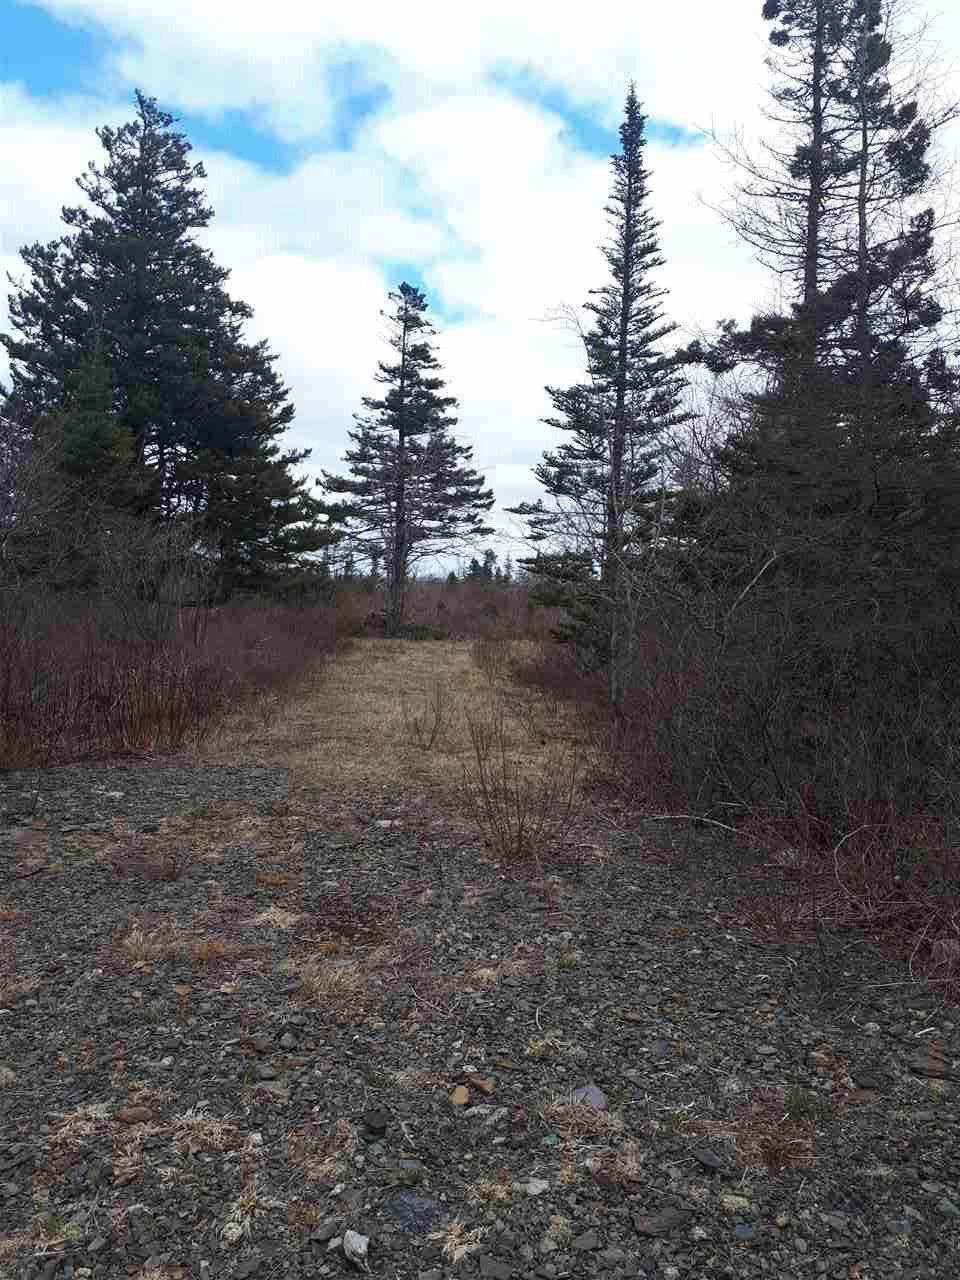 Main Photo: 252 Whitehead Road in Harrietsfield: 9-Harrietsfield, Sambr And Halibut Bay Vacant Land for sale (Halifax-Dartmouth)  : MLS®# 202025766